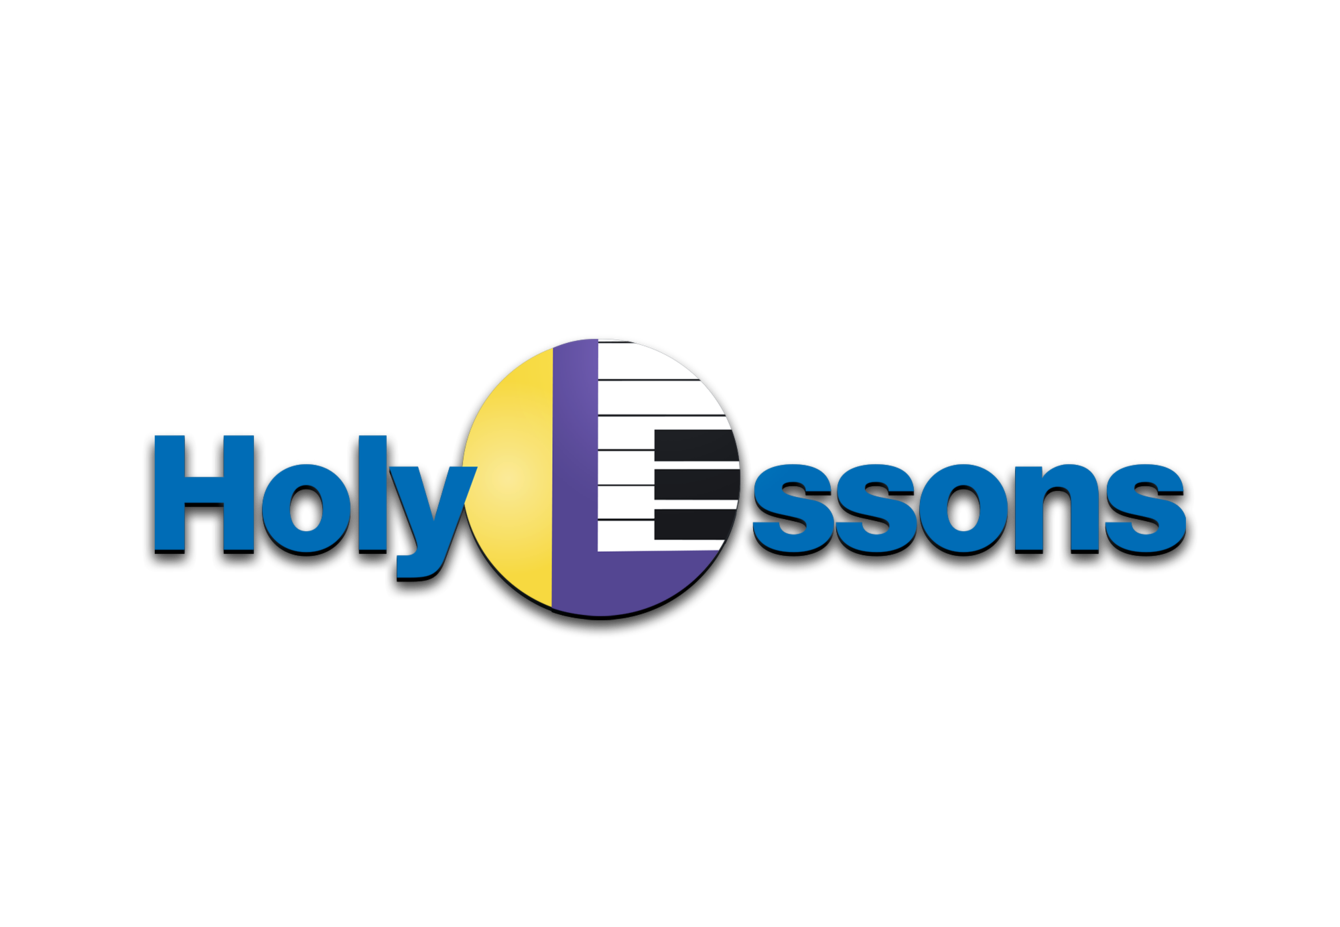 Holy Lessons